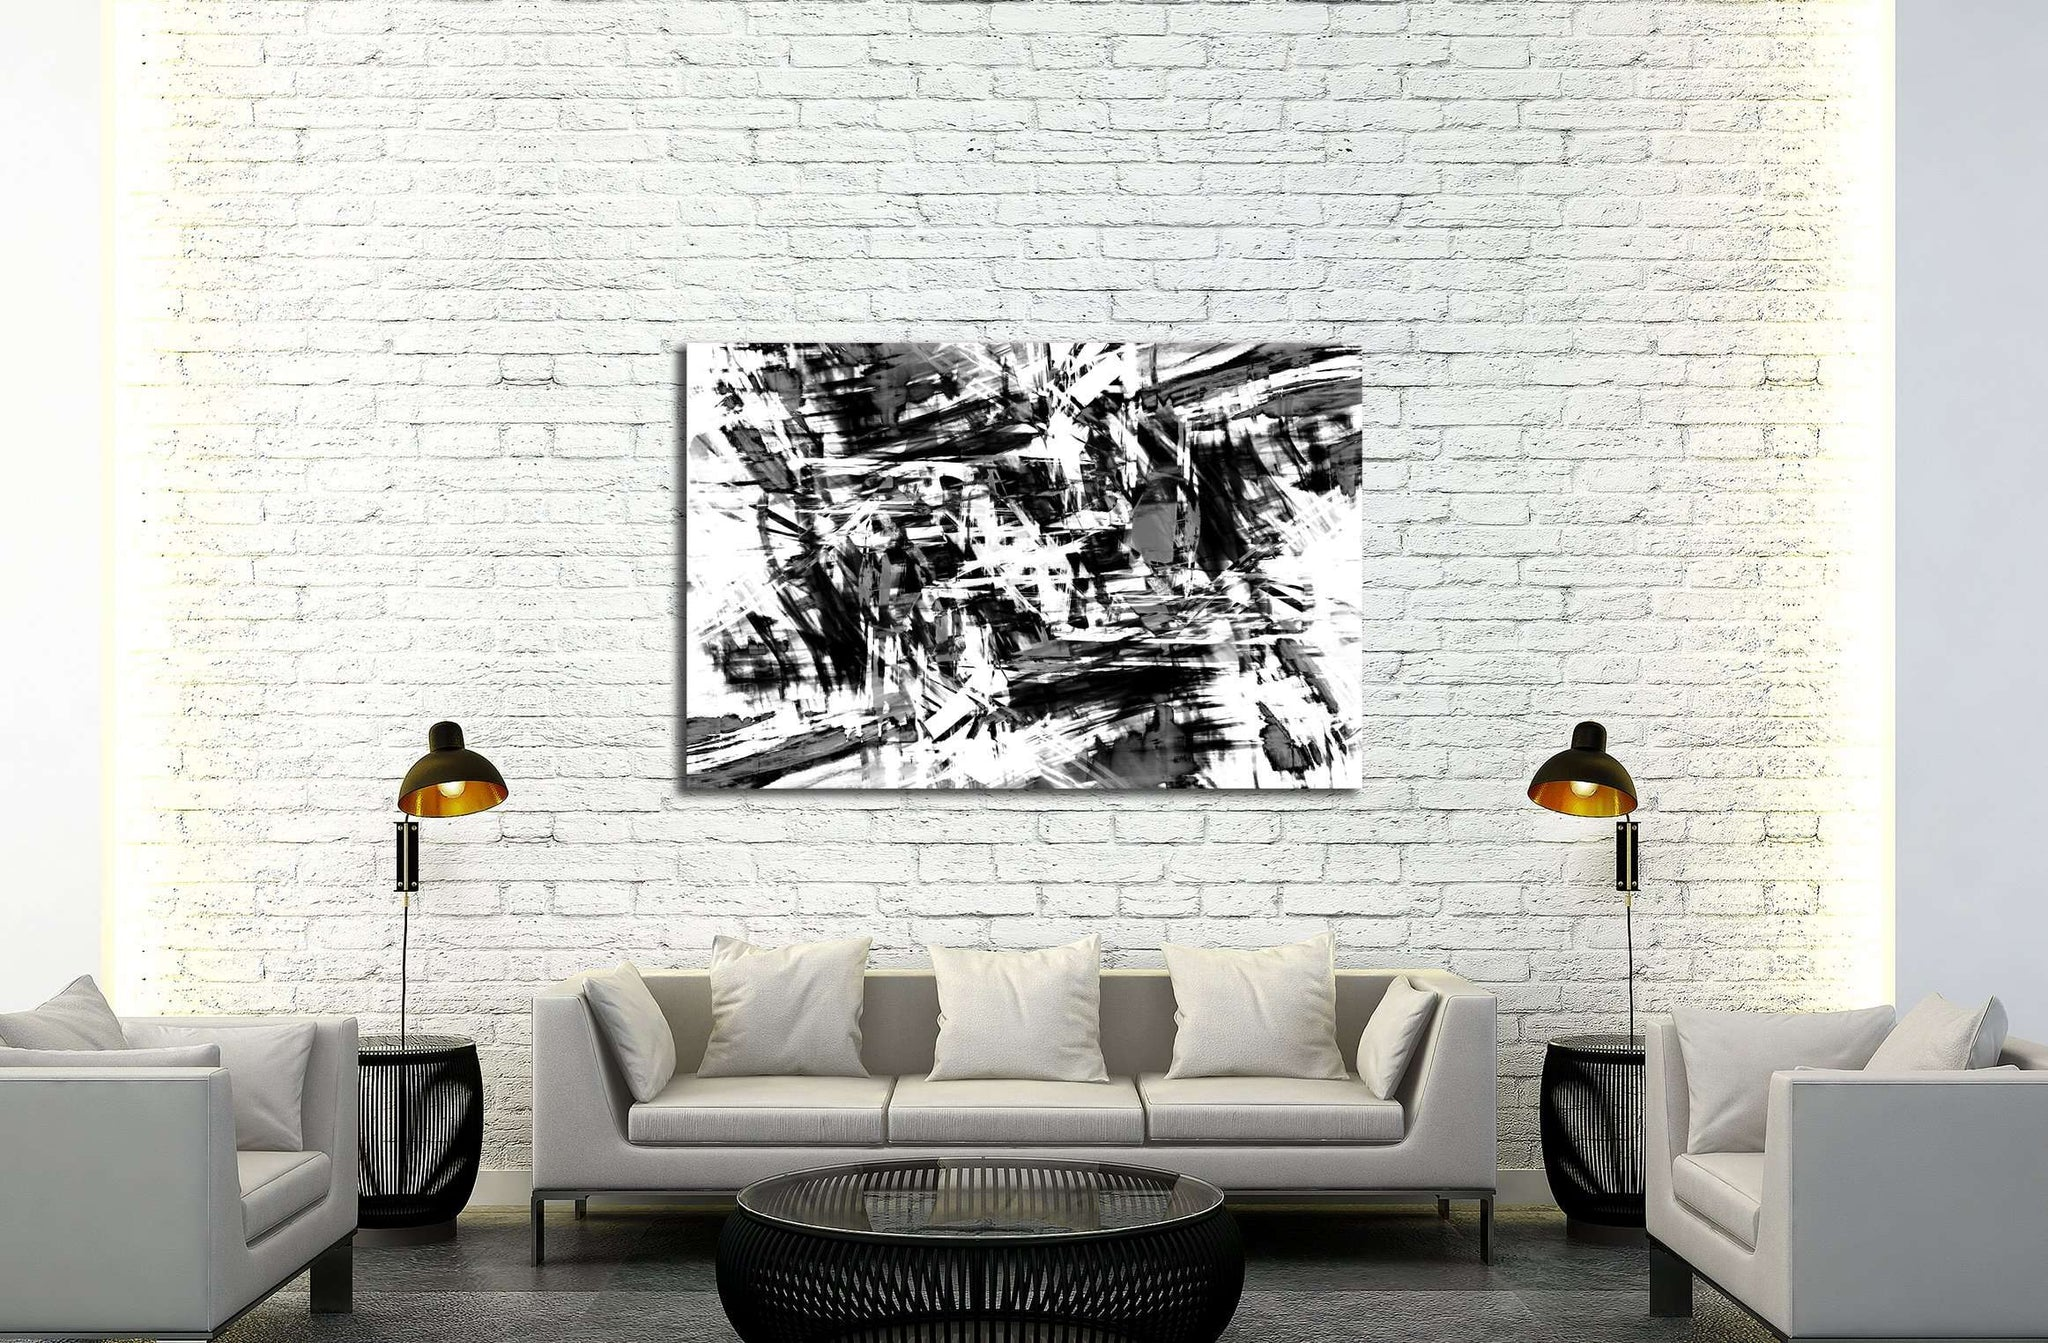 background in the style of old grunge graphics №3266 Ready to Hang Canvas Print